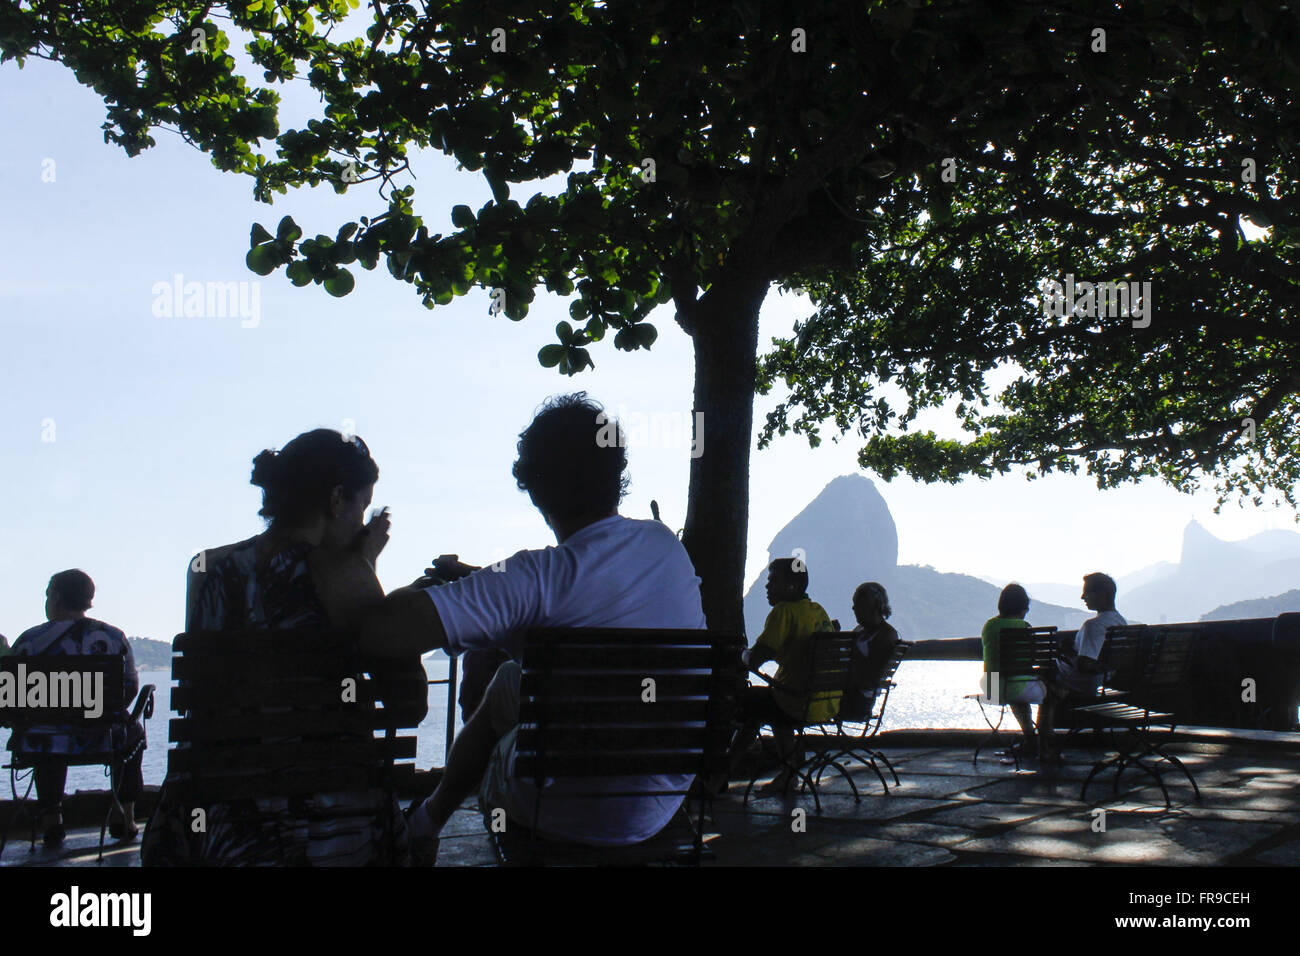 People observe the landscape from the entrance of Guanabara Bay - Stock Image